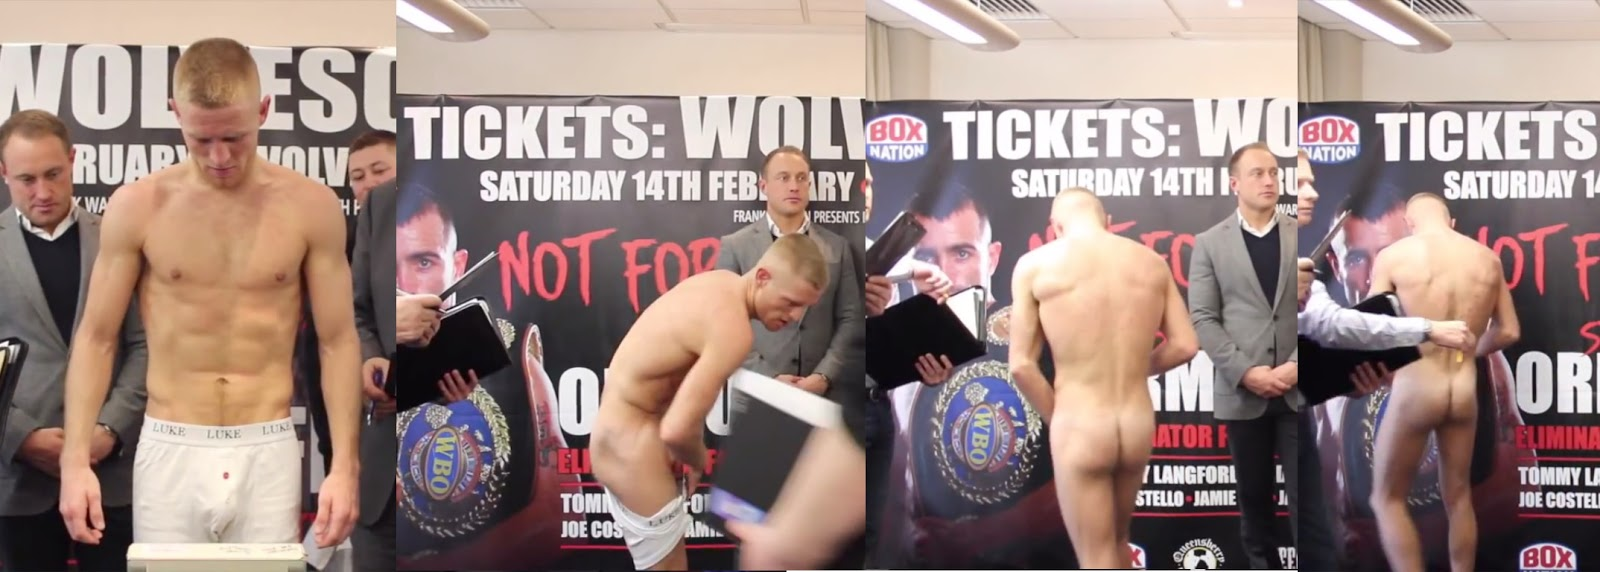 Naked Weigh In Video 19